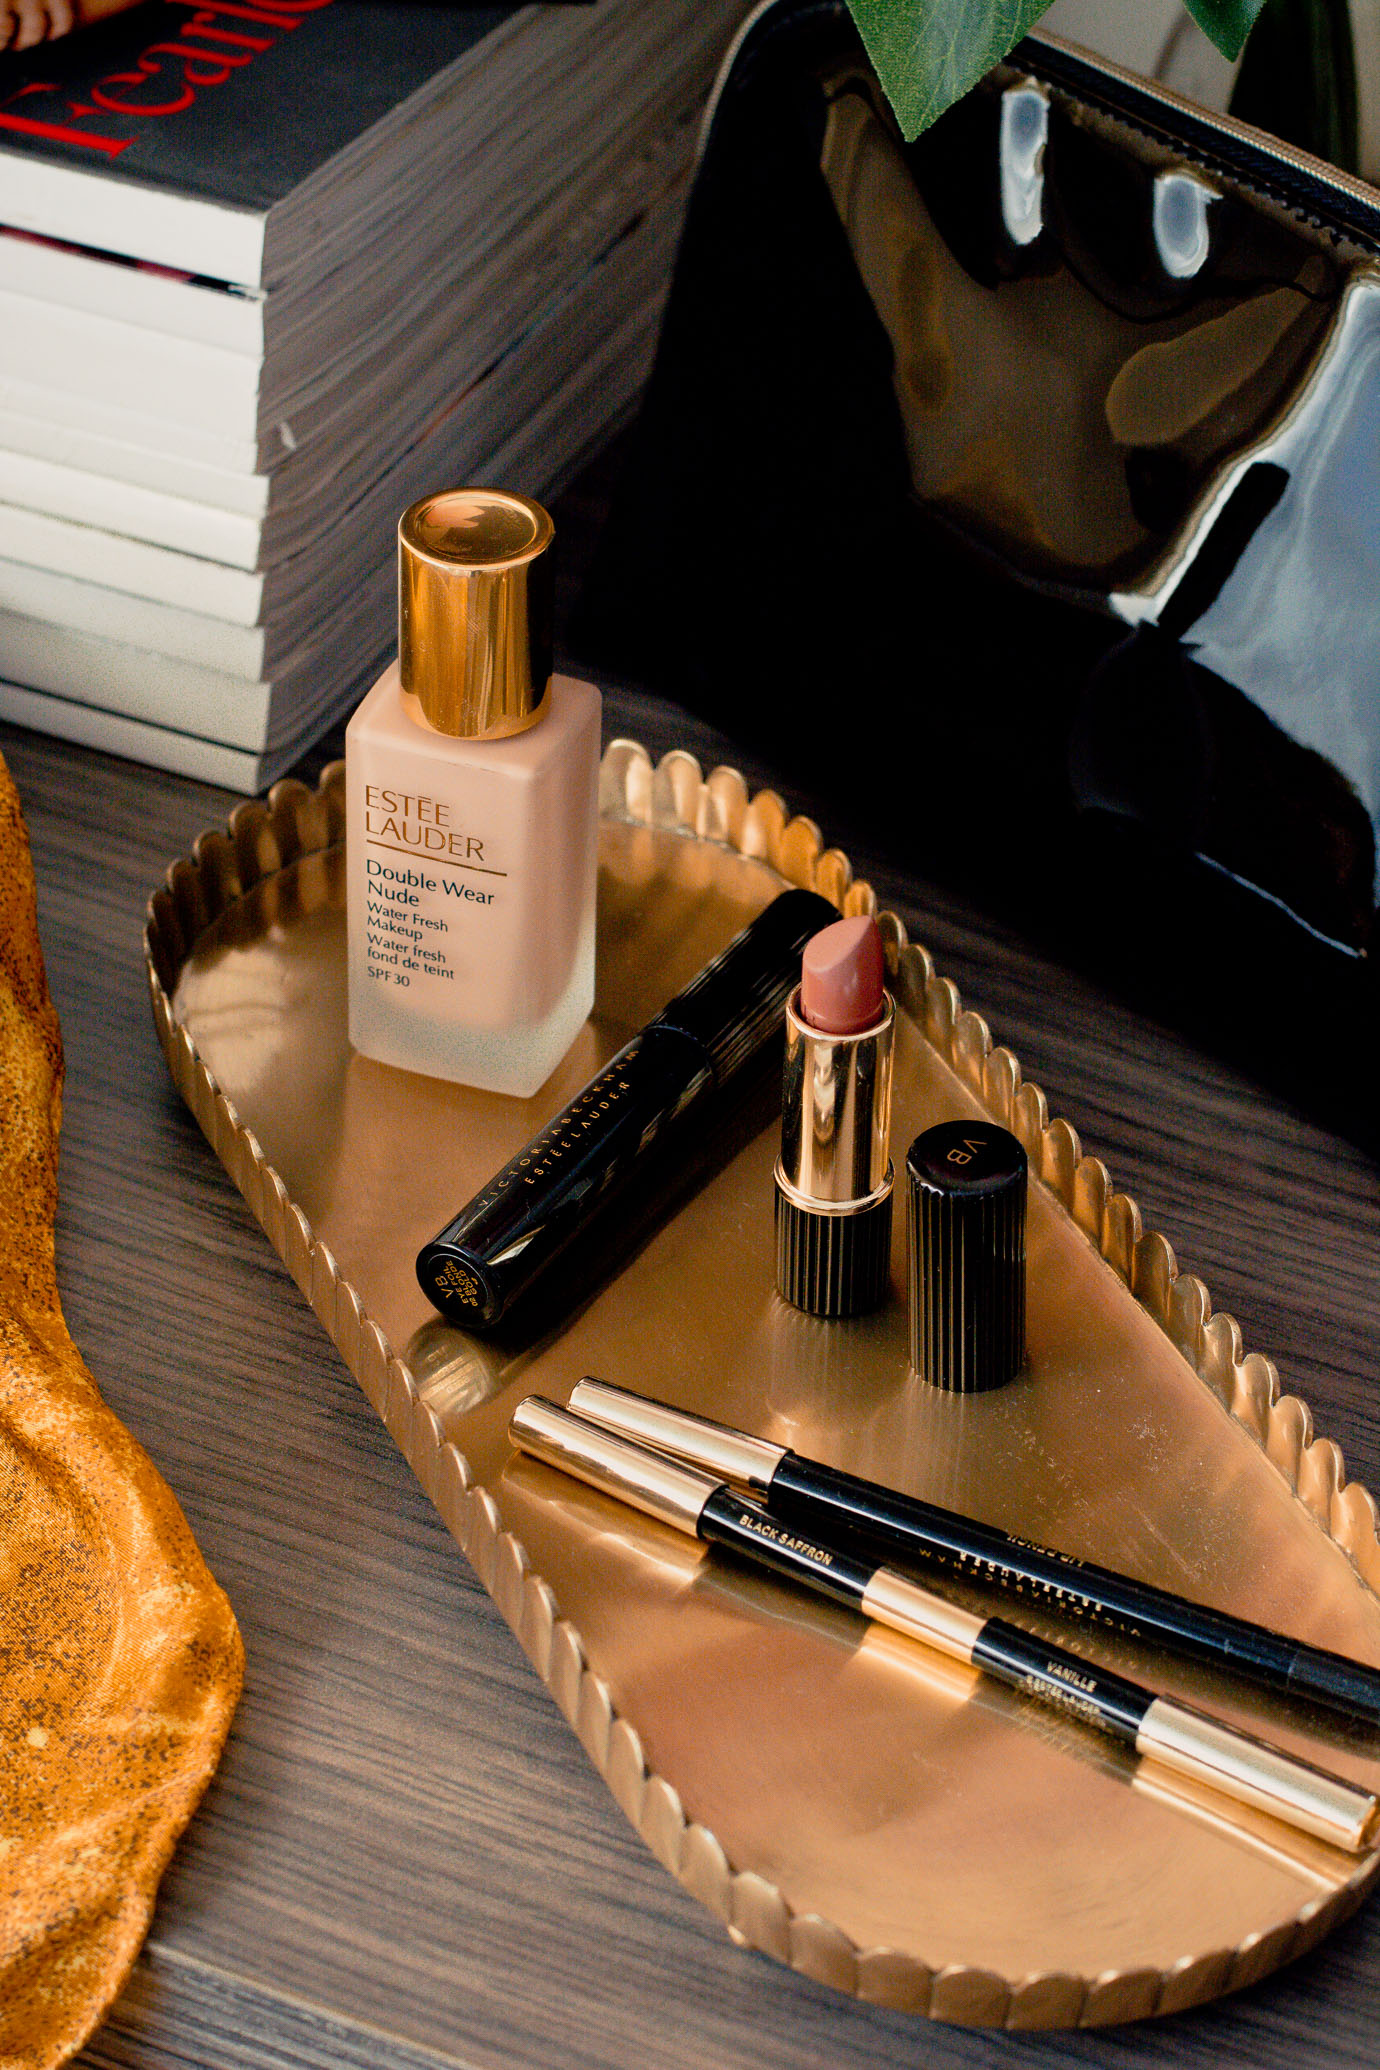 Estee lauder Victoria Beckham beauty collection